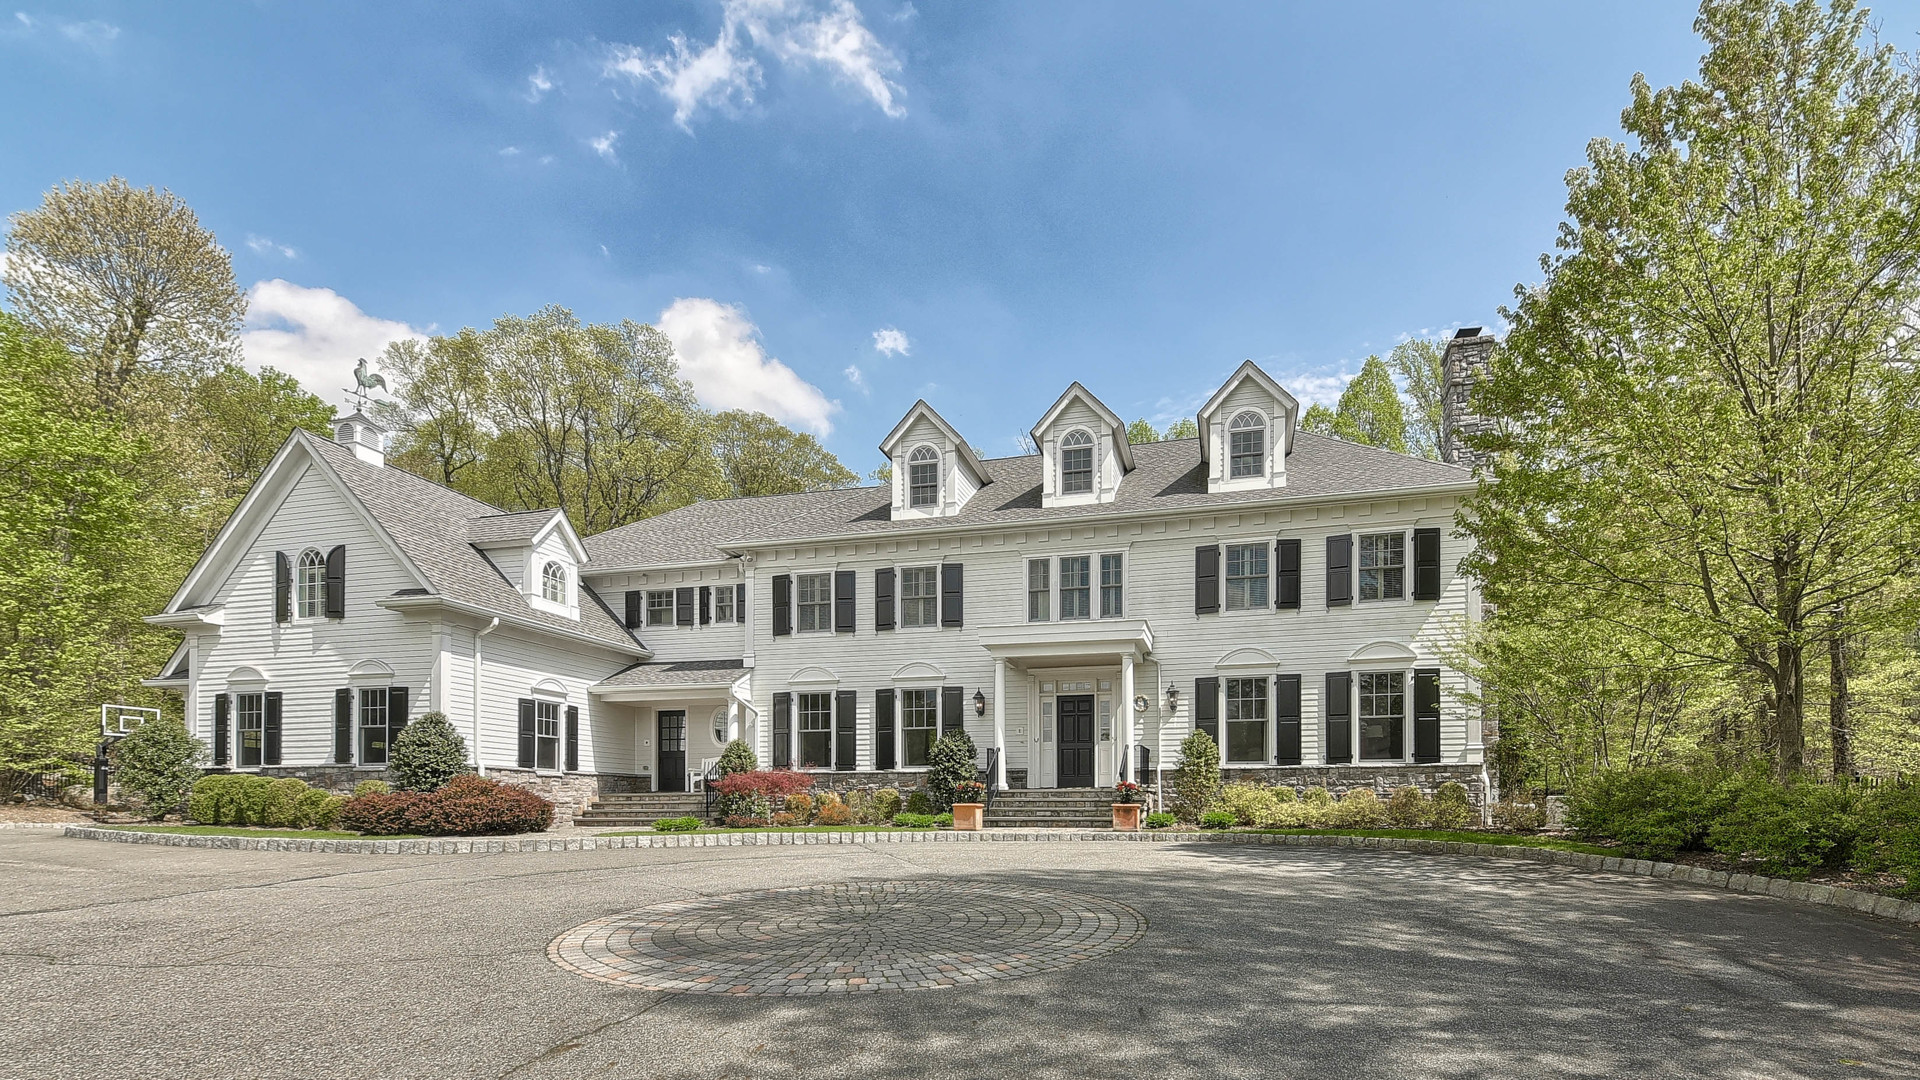 177 Breakneck Road, Franklin Lakes  - Listed for $1,950,000  Elegance meets the art of fine living in this breathtaking custom Colonial. Stately set upon 2+ private acres…